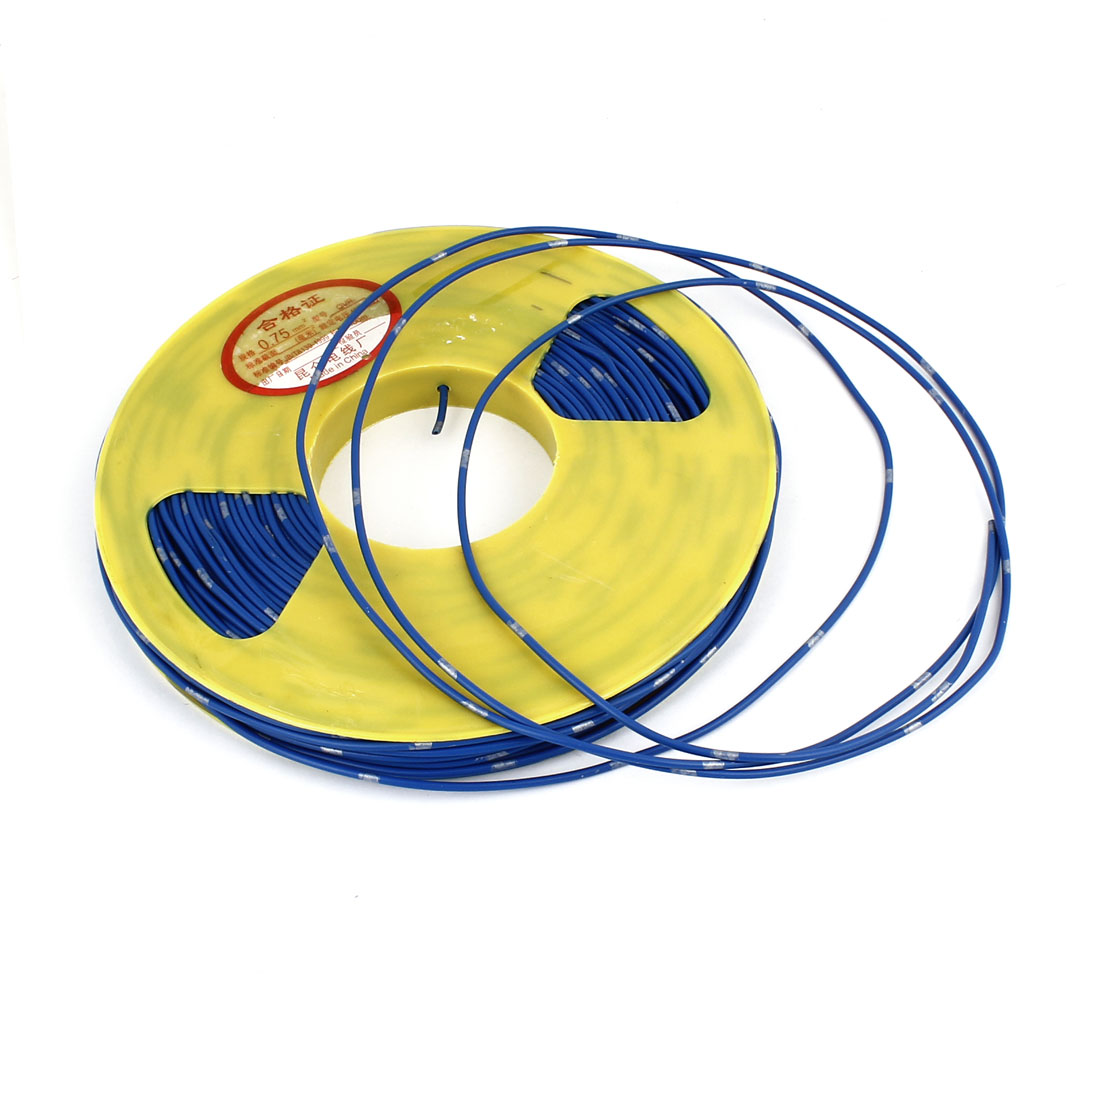 100M BVR 0.75mm2 Flexible Blue PVC Insulated Multi Strand Copper Electric Wire Cable Roll